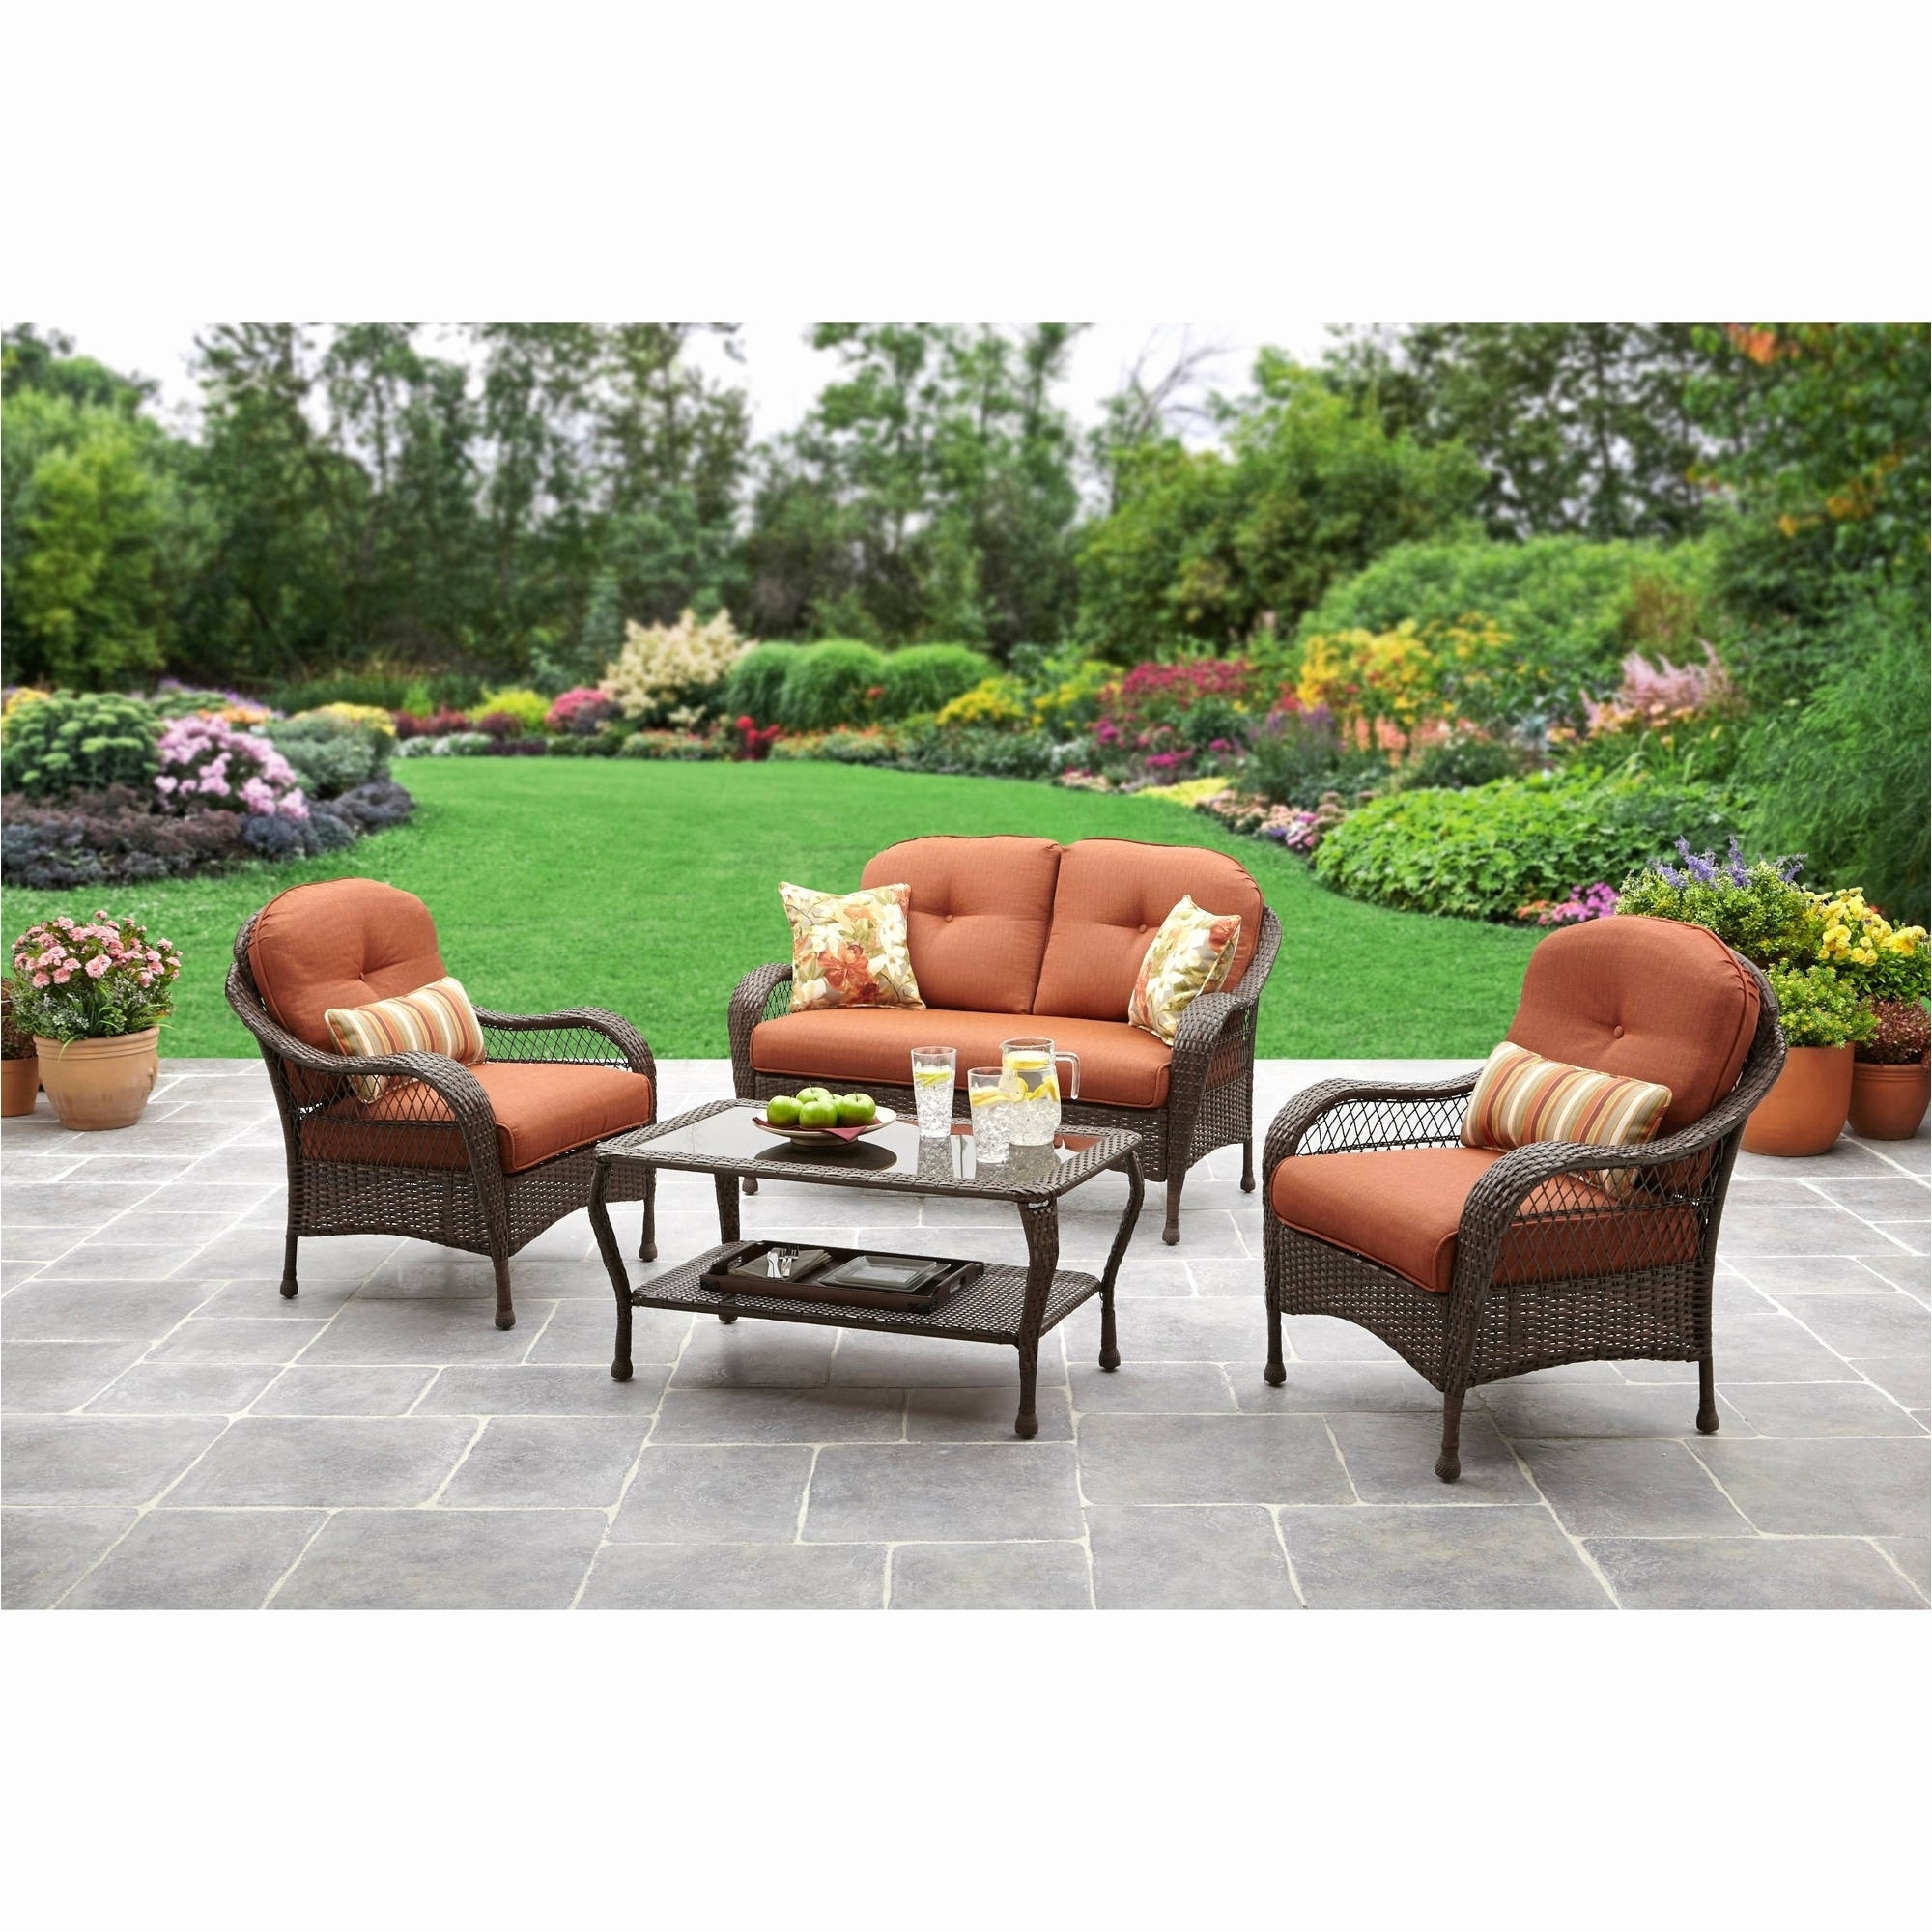 Inexpensive Patio Conversation Sets Throughout 2018 30 Amazing Patio Conversation Sets Ideas Scheme Of Cheap Patio (View 10 of 20)